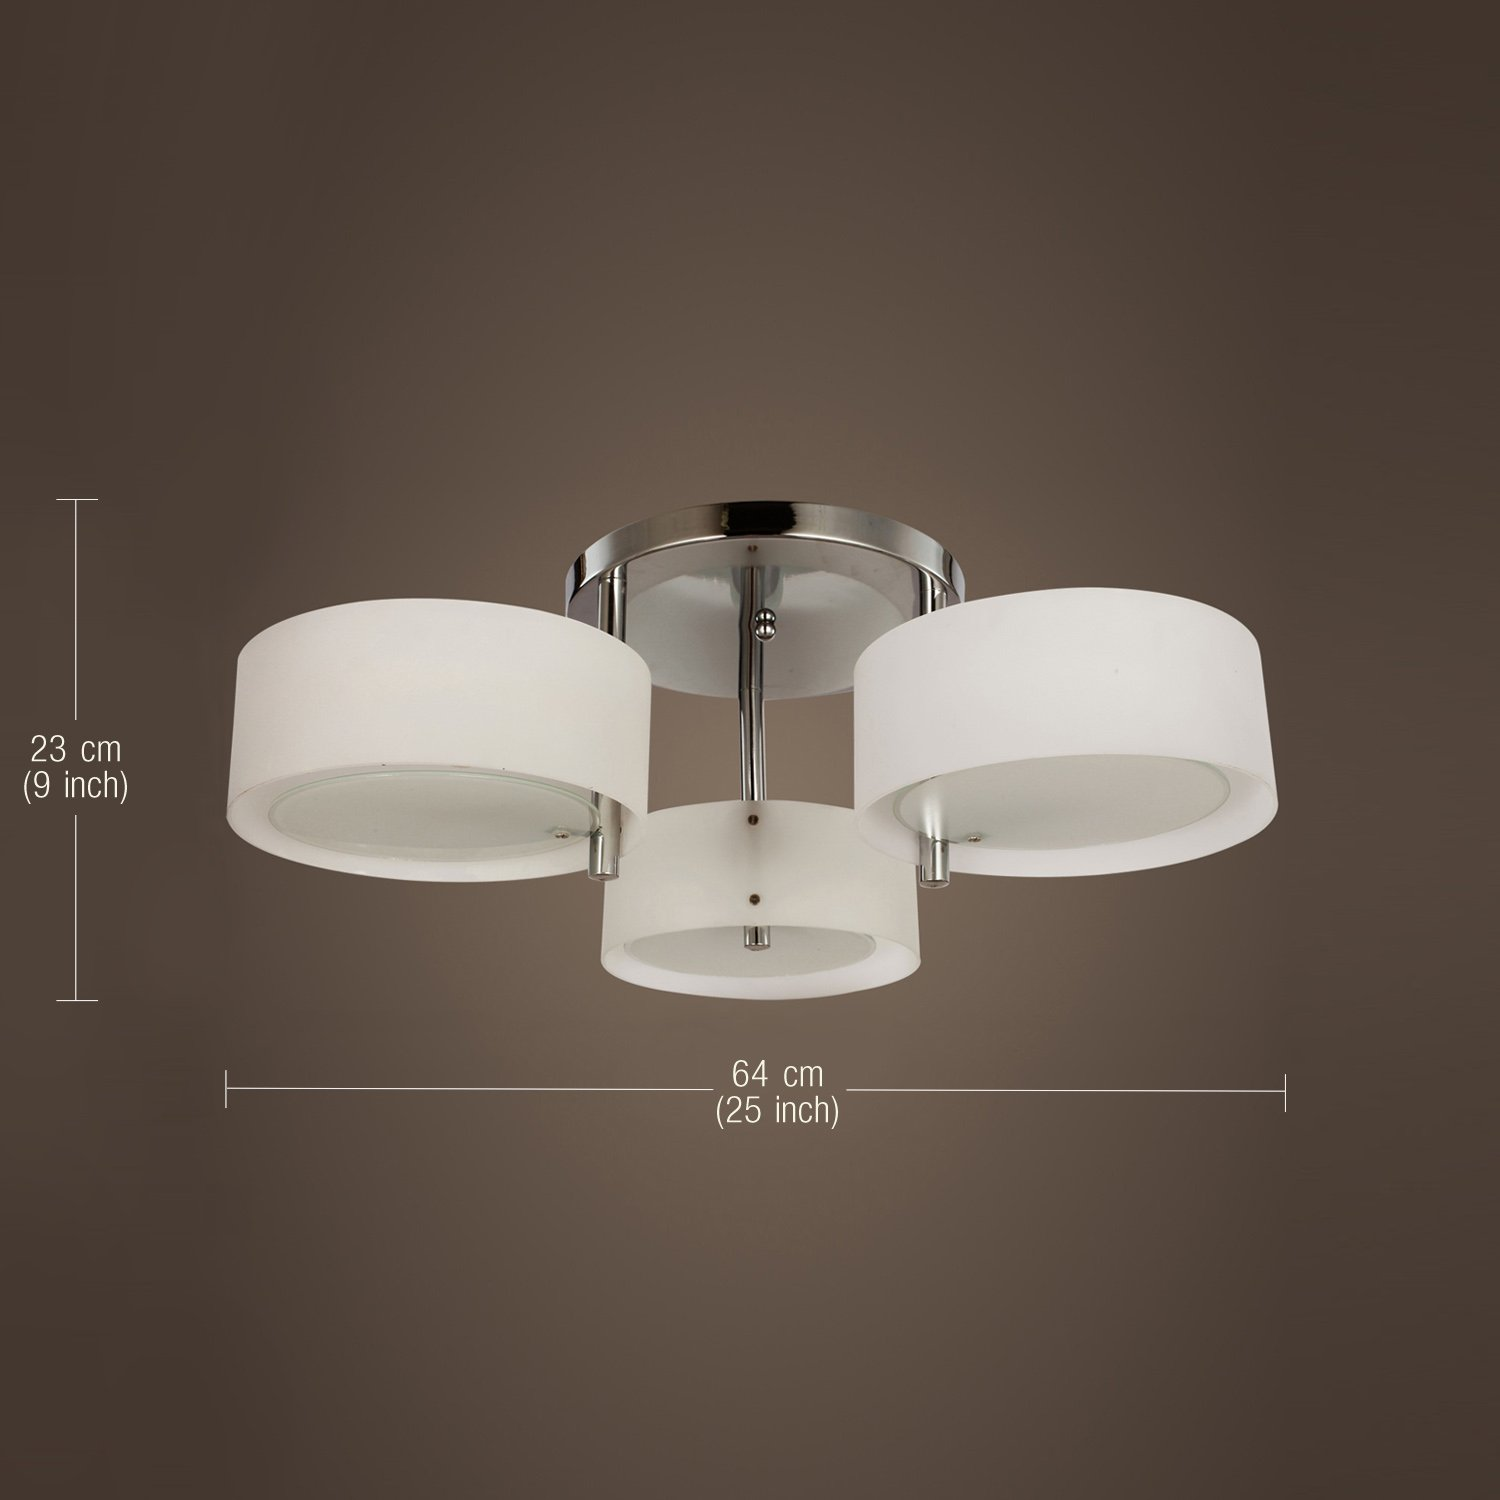 mini lovegrove mercury ross by stardust light artemide ceiling lighting fixtures